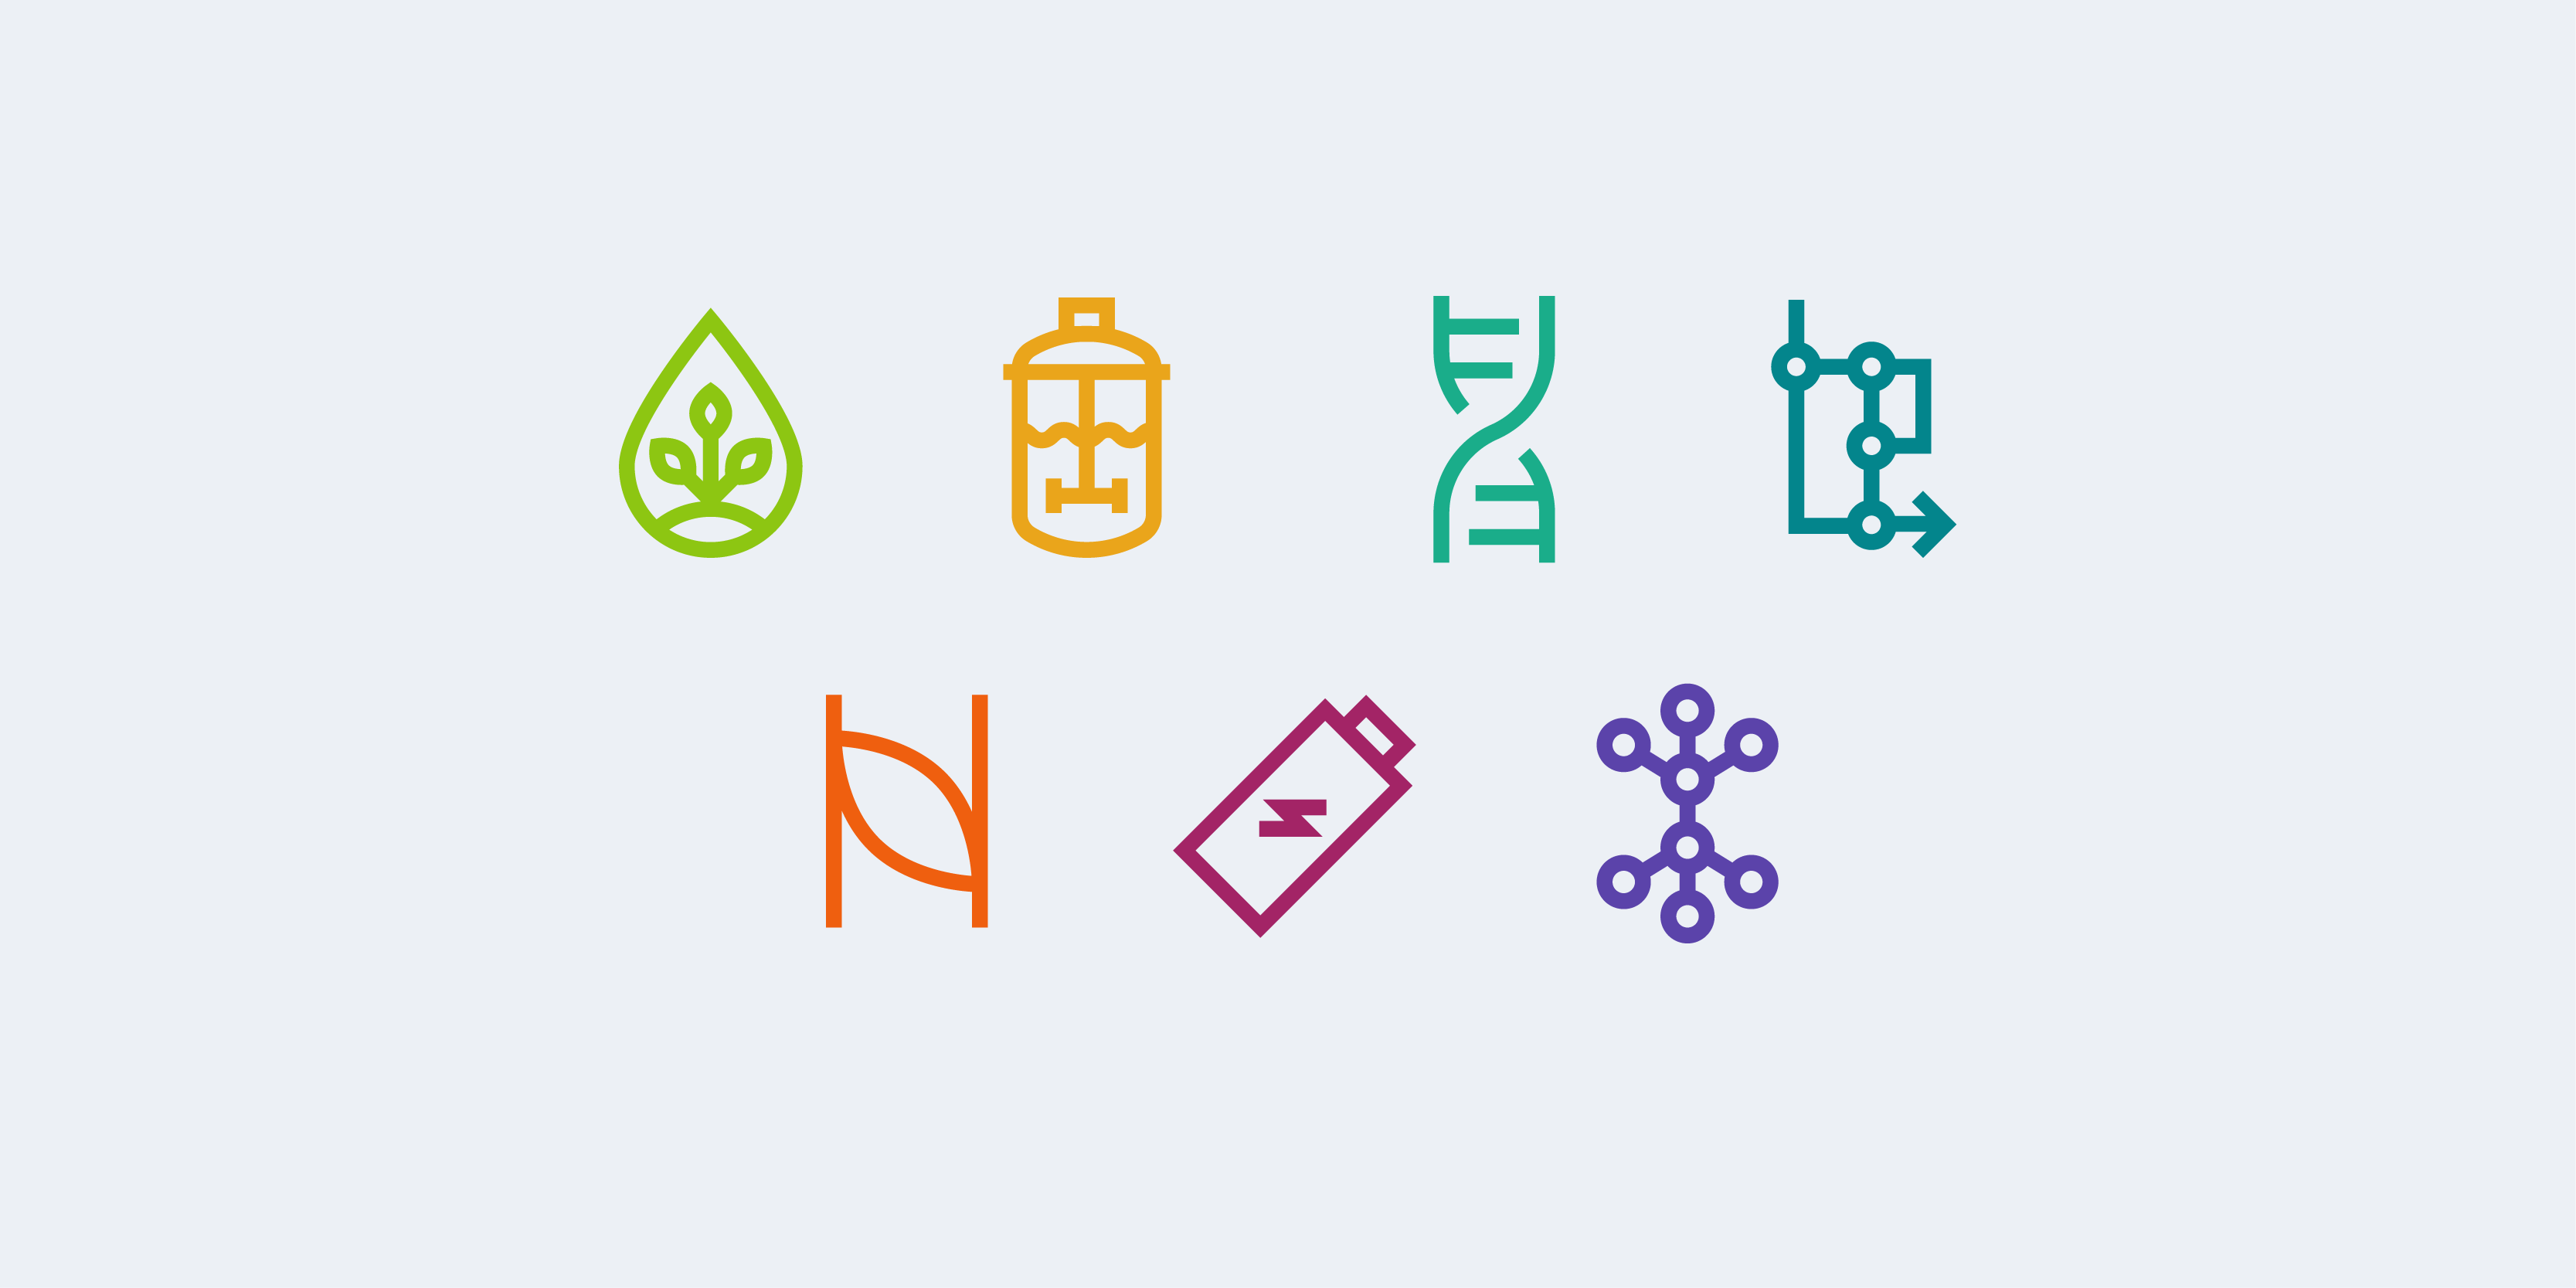 MIT ChemE research area icons